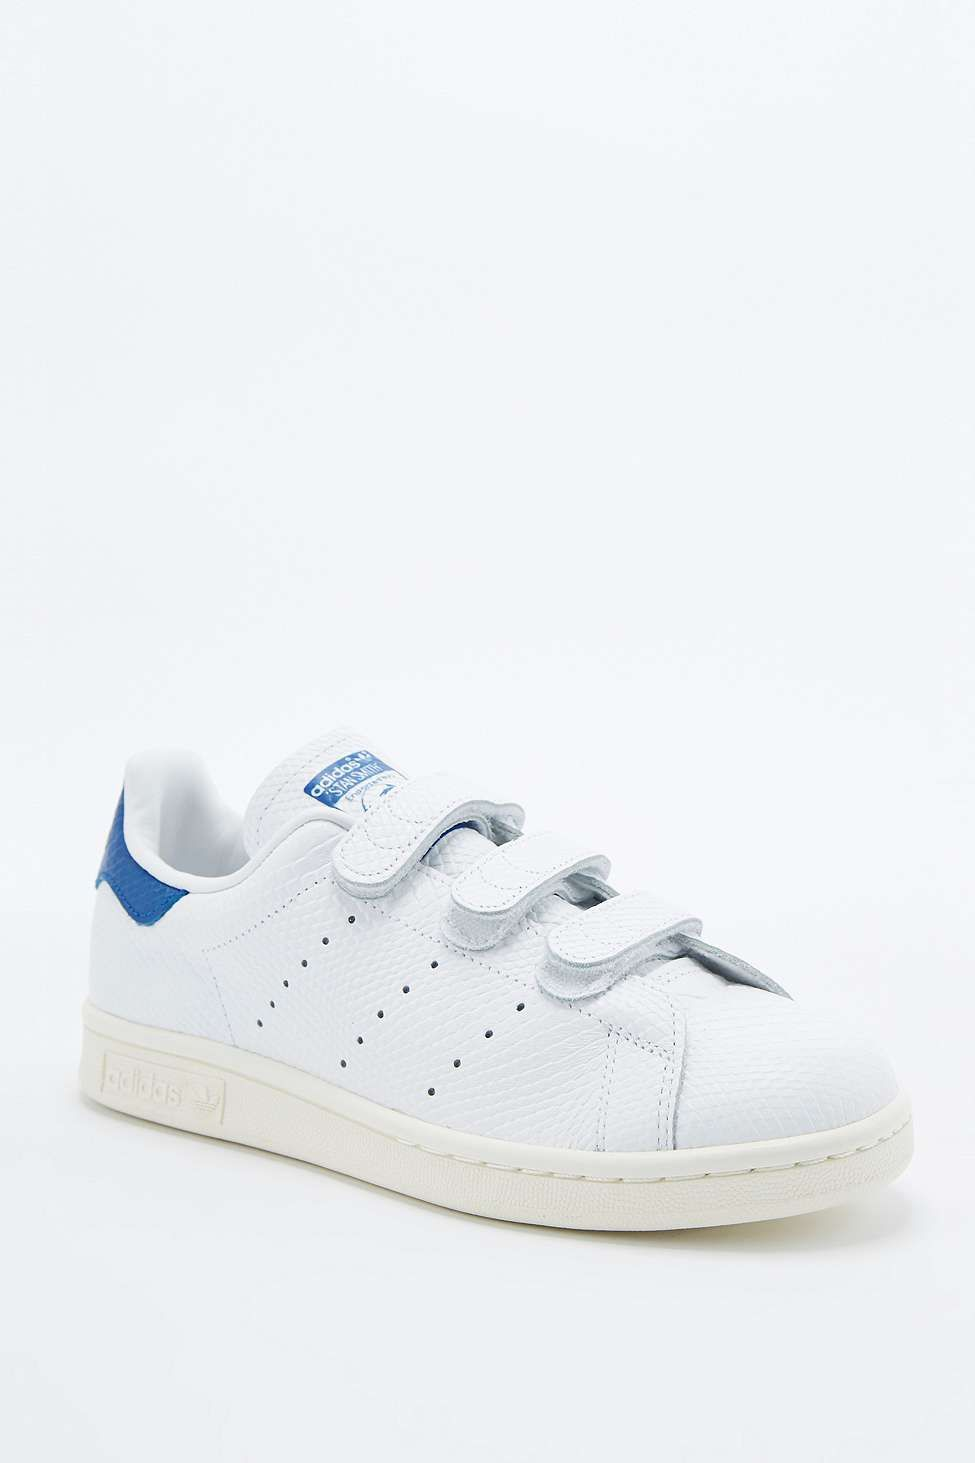 new arrival d7e1c 9b994 adidas Originals Stan Smith White   Blue Velcro Trainers